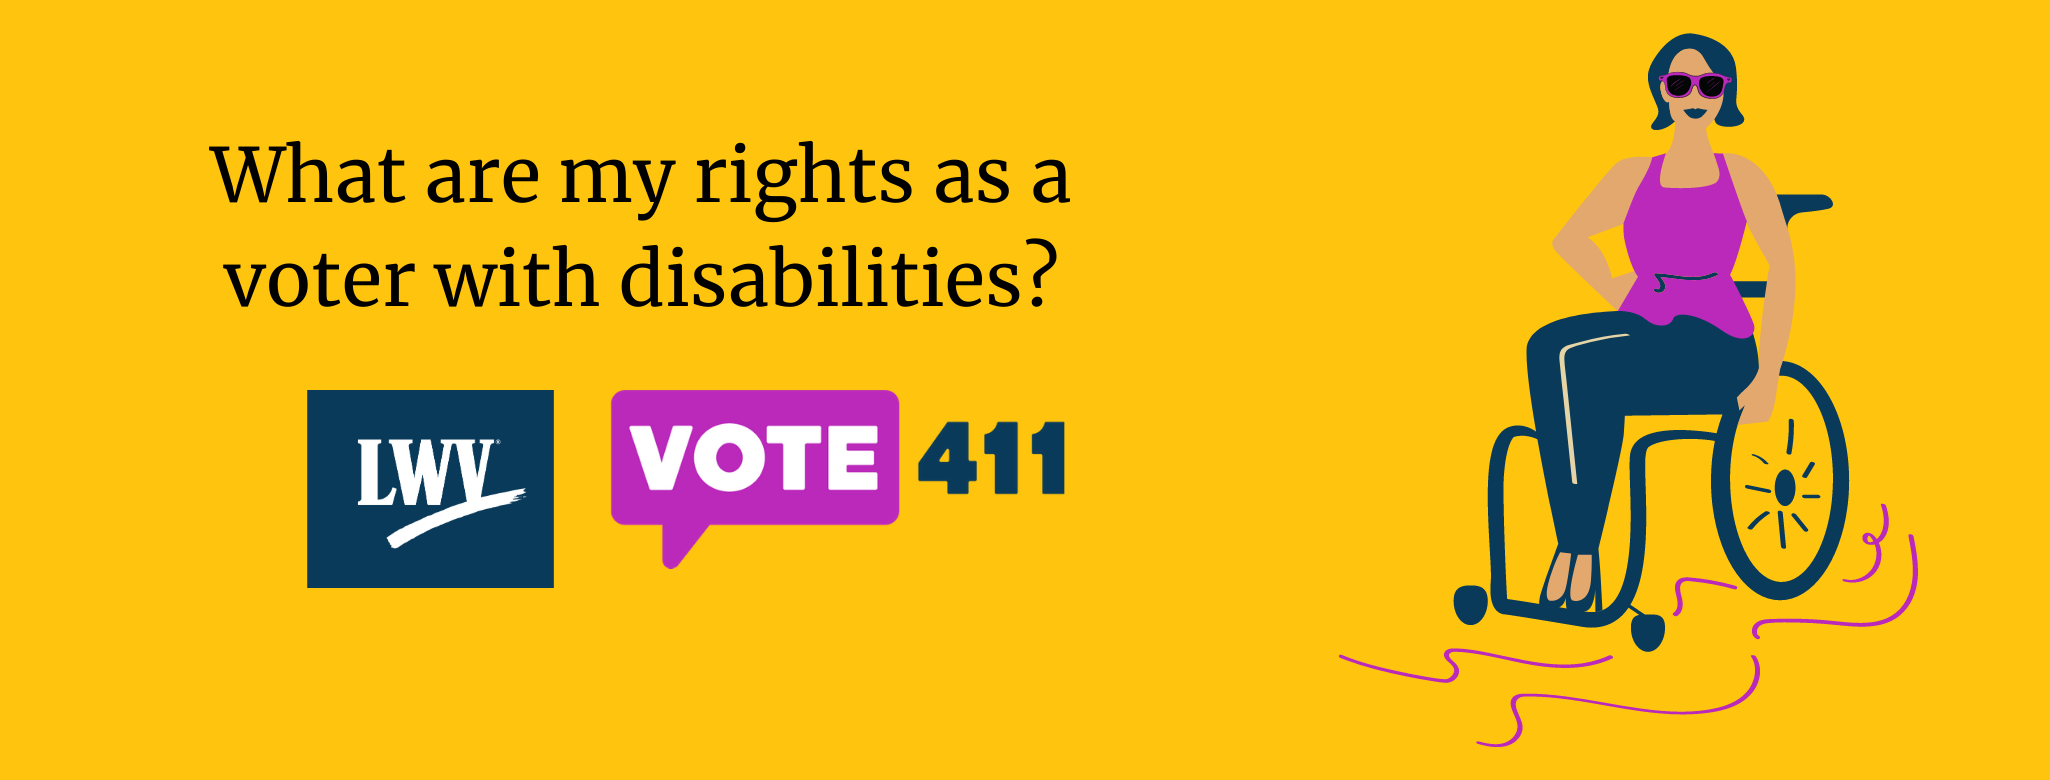 What are my rights as a voter with disabilities?